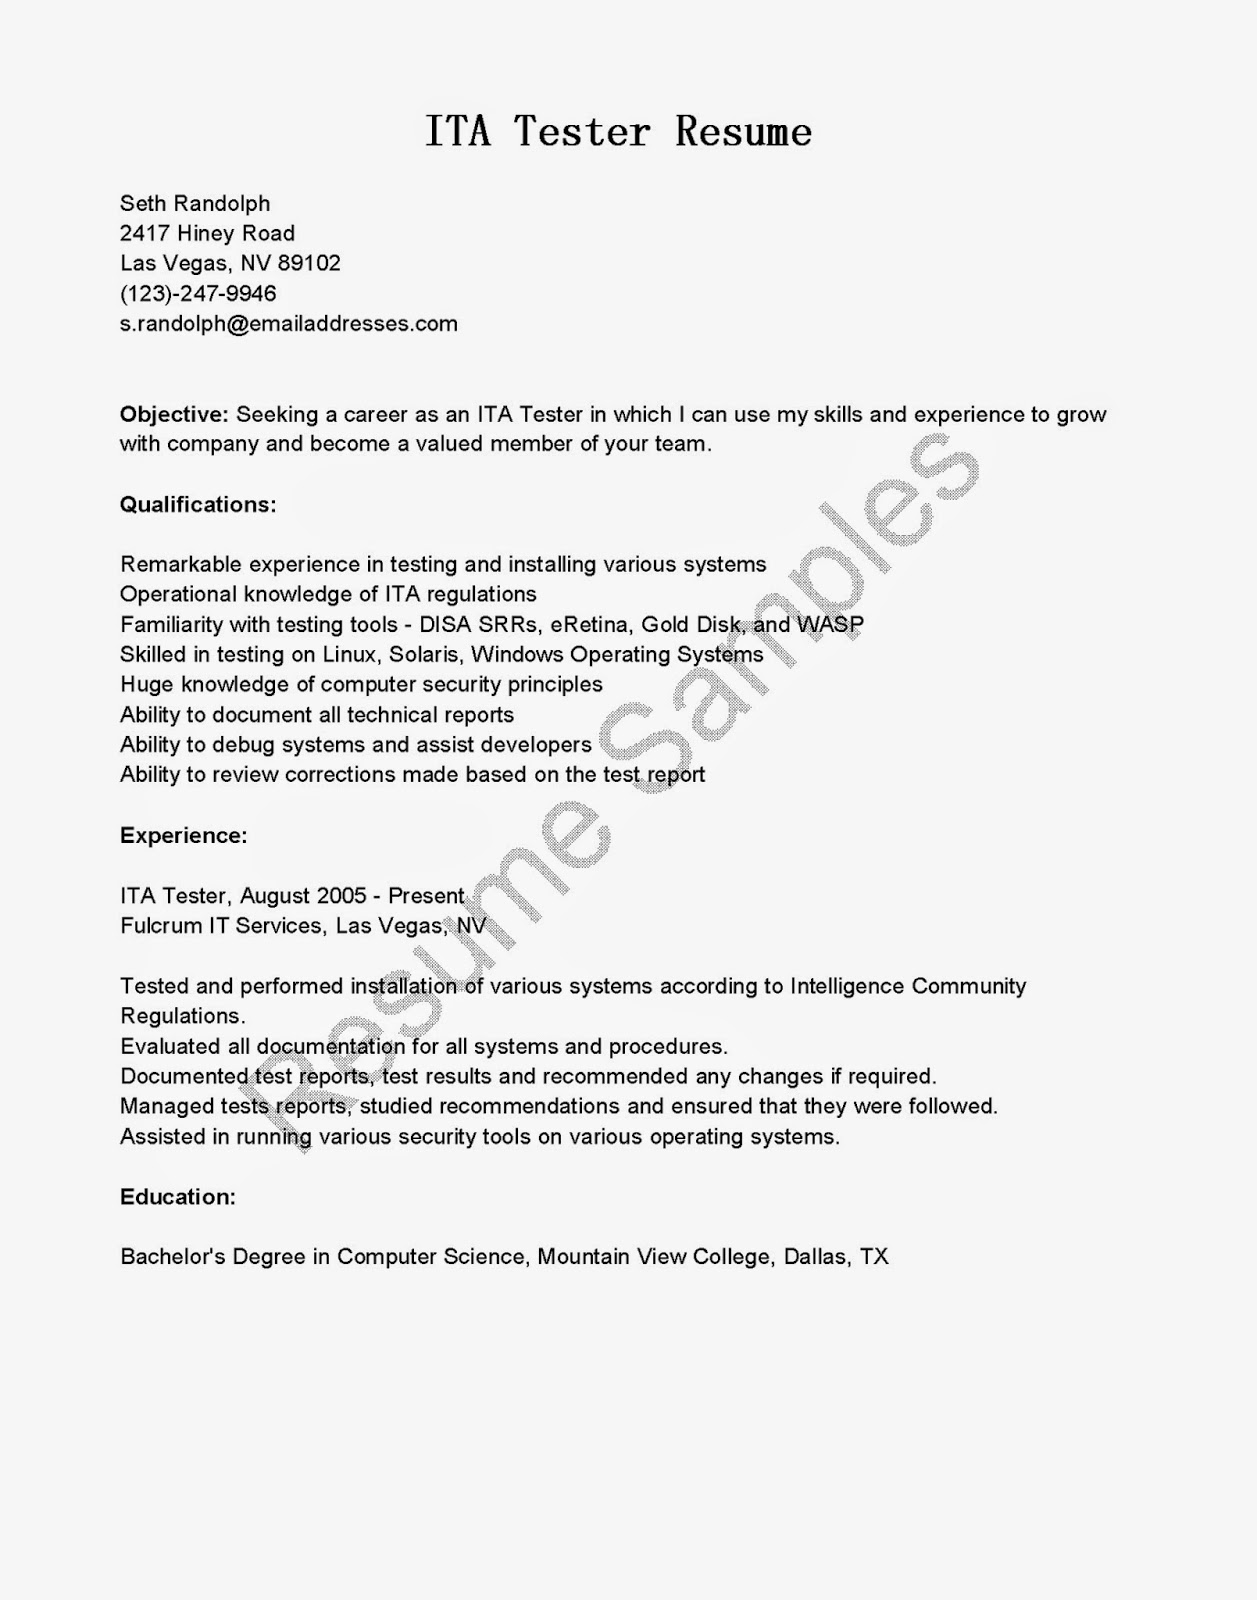 Magnificent 1 Year Experience Resume Format For Dot Net Big 10 Words Not To Put On Your Resume Square 1099 Agreement Template 15 Year Old Resume Youthful 1920s Party Invitation Template Brown2007 Powerpoint Templates Free Sample Tester Resume] Pics Photos Resume Format For Software ..